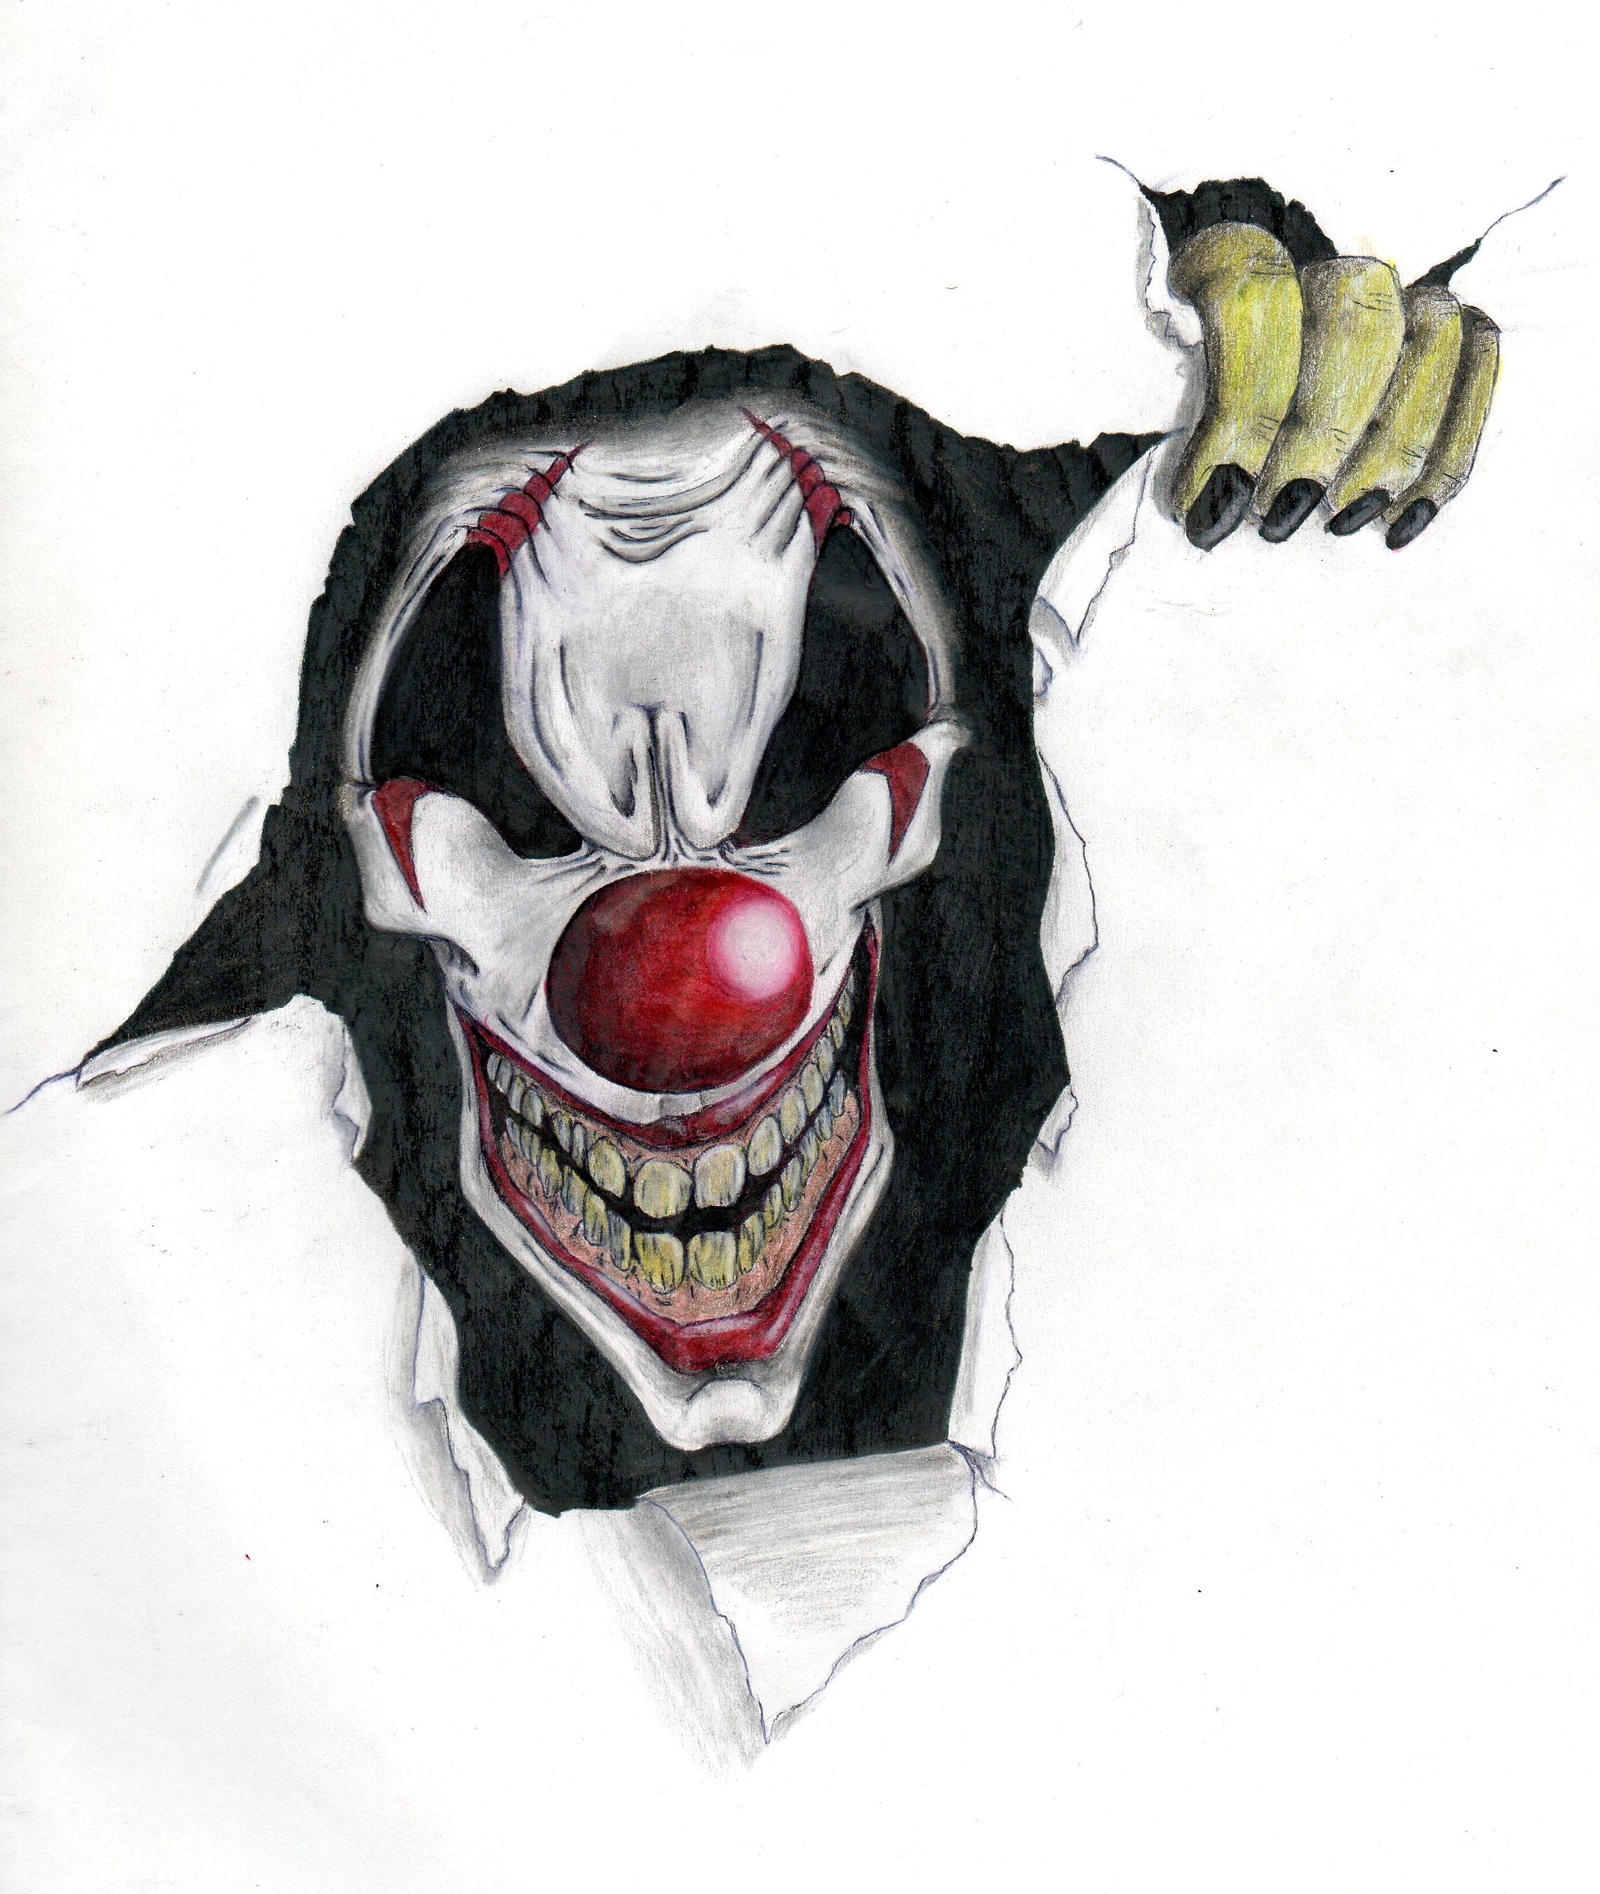 Evil Drawings Of Clowns | www.imgkid.com - The Image Kid ...